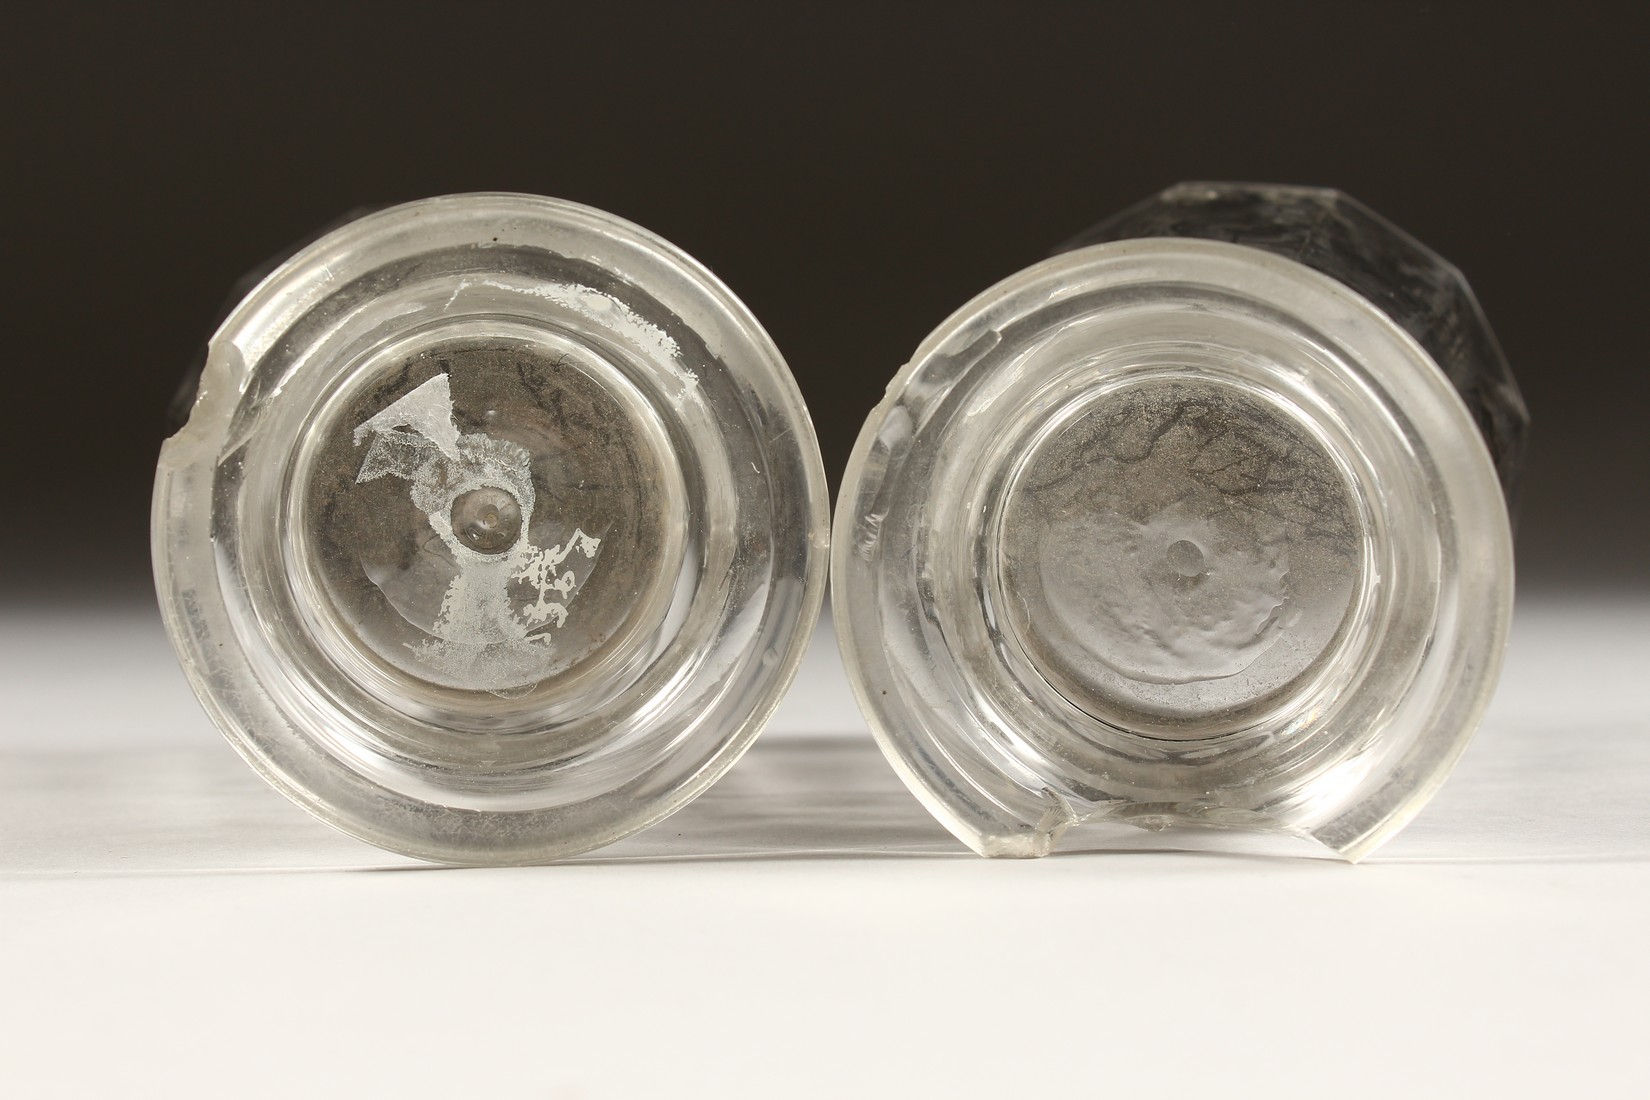 A GOOD PAIR OF BOHEMIAN GLASS TWELVE SIDED BEAKERS, painted with Turkish figures, scrolls and birch. - Image 5 of 5